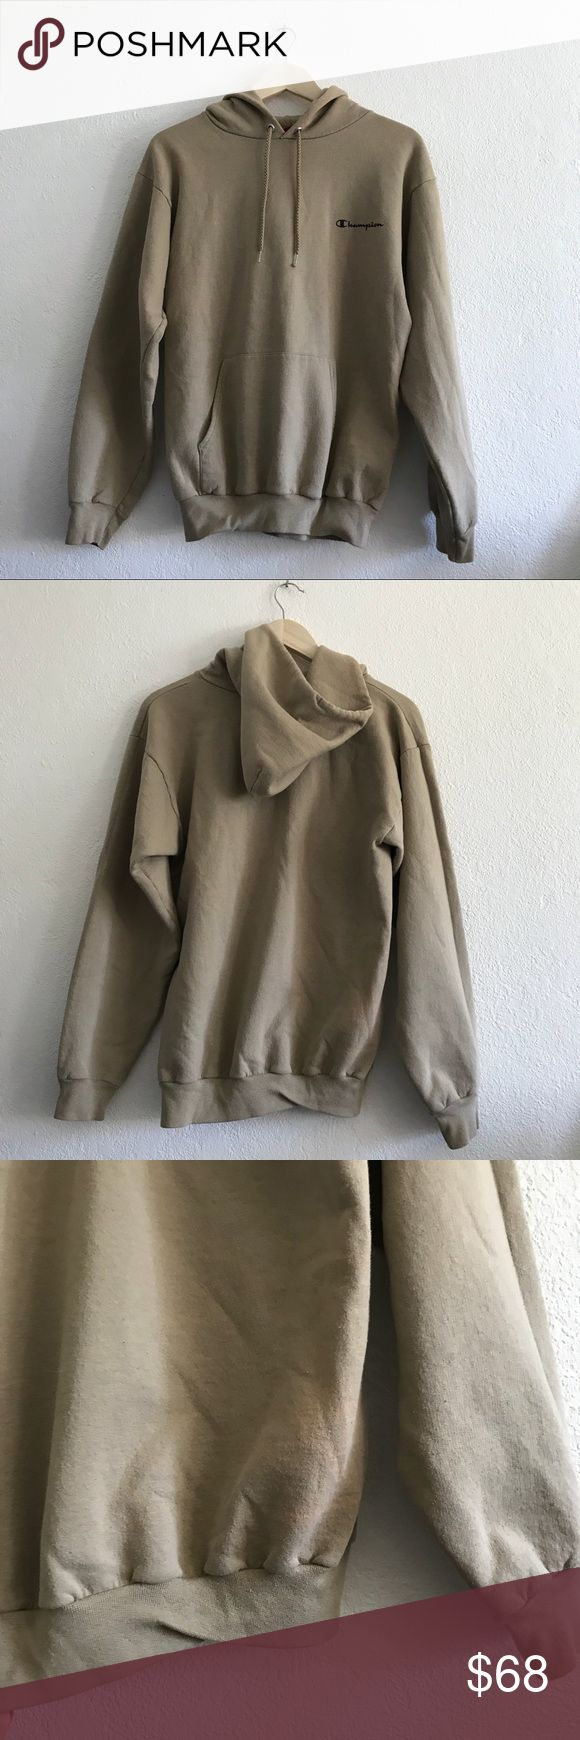 Champion beige logo hoodie Champion beige logo hoodie   HAS FLAWS: discoloration but it blends in with the sweater   fits all sizes depending on how oversized you want it to be Champion Jackets & Coats